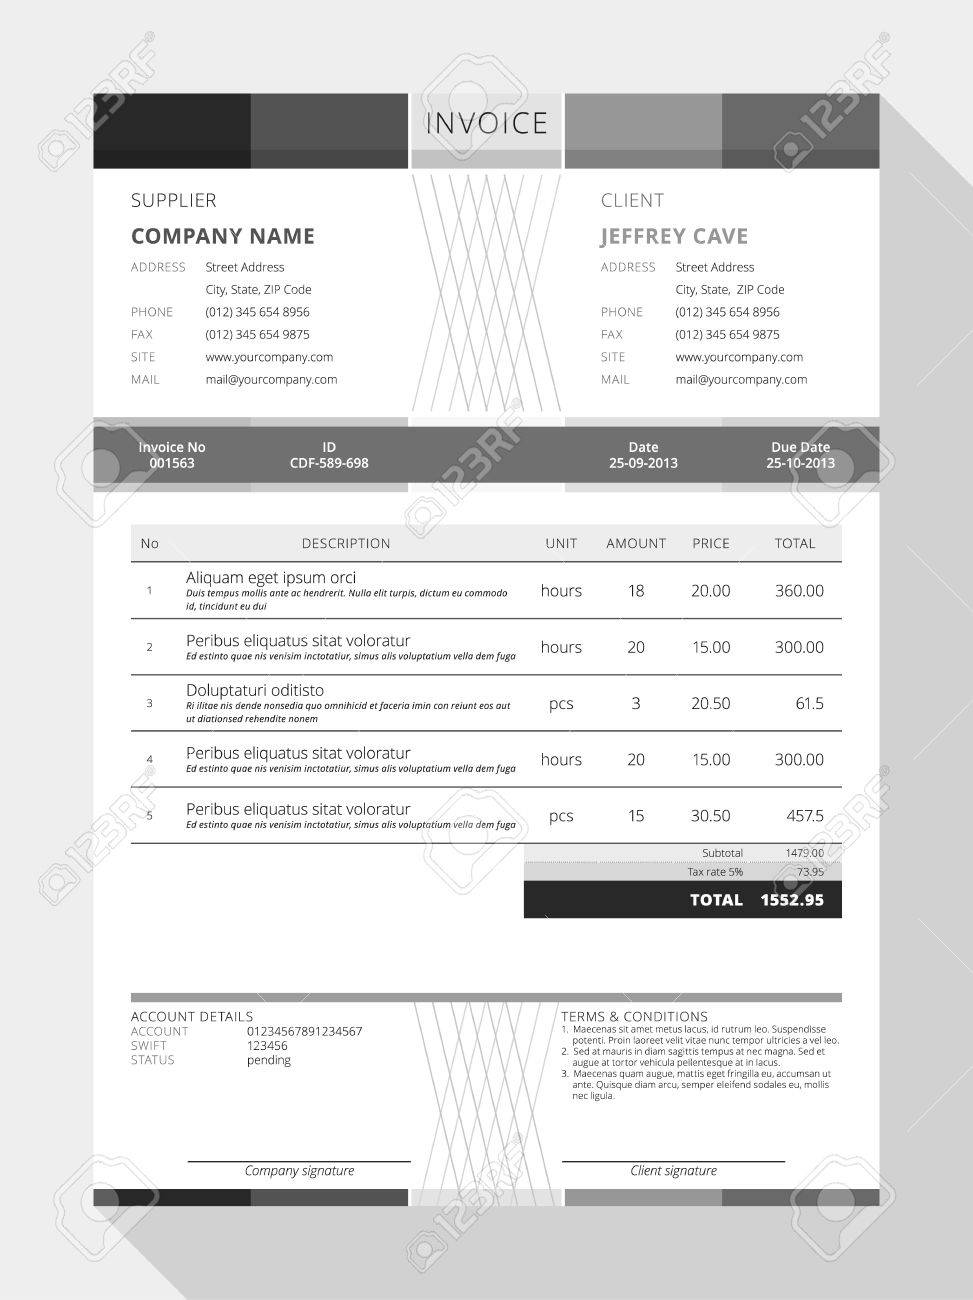 Aaaaeroincus  Nice Design An Invoice  Professional Graphic Design Invoice  With Fetching Vector Customizable Invoice Form Template Design Vector   Design An Invoice With Alluring Free Proforma Invoice Also Invoice Download Template In Addition Create An Invoice Online Free And Import Invoice As Well As What Is On An Invoice Additionally Invoices Factoring From Happytomco With Aaaaeroincus  Fetching Design An Invoice  Professional Graphic Design Invoice  With Alluring Vector Customizable Invoice Form Template Design Vector   Design An Invoice And Nice Free Proforma Invoice Also Invoice Download Template In Addition Create An Invoice Online Free From Happytomco